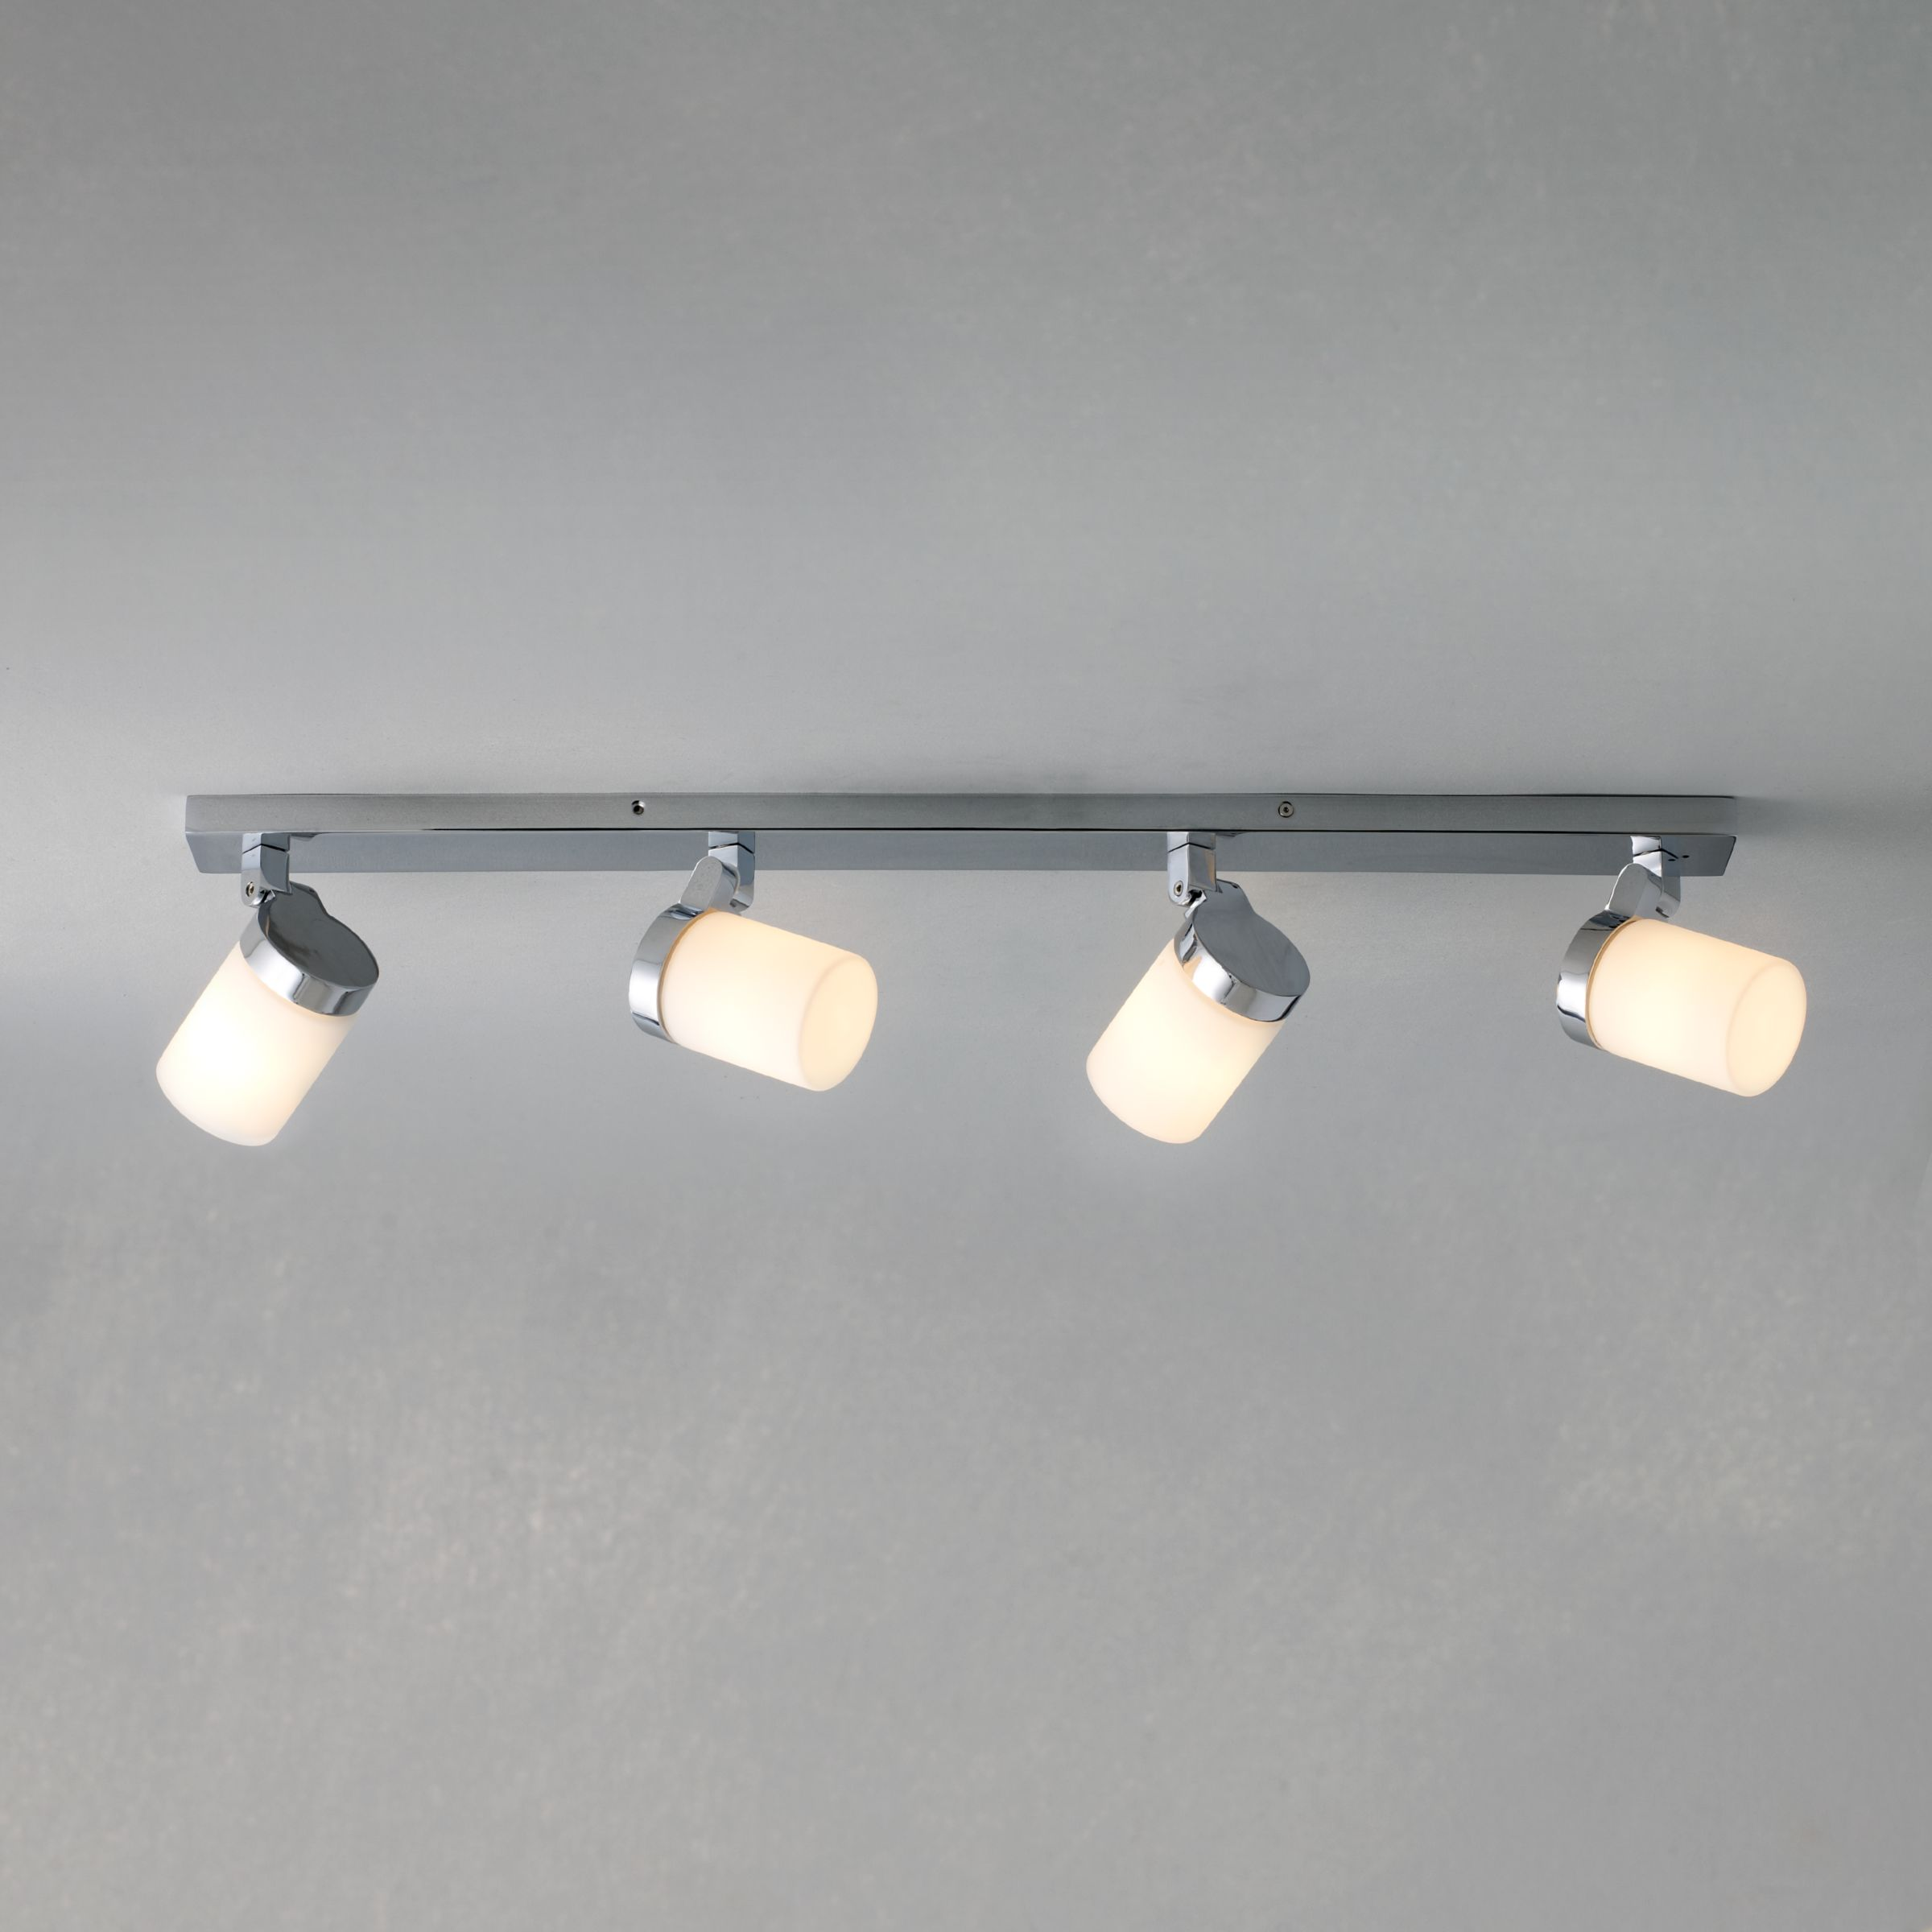 Ceiling Light Fittings At John Lewis : Category home amp garden bathroom fittings